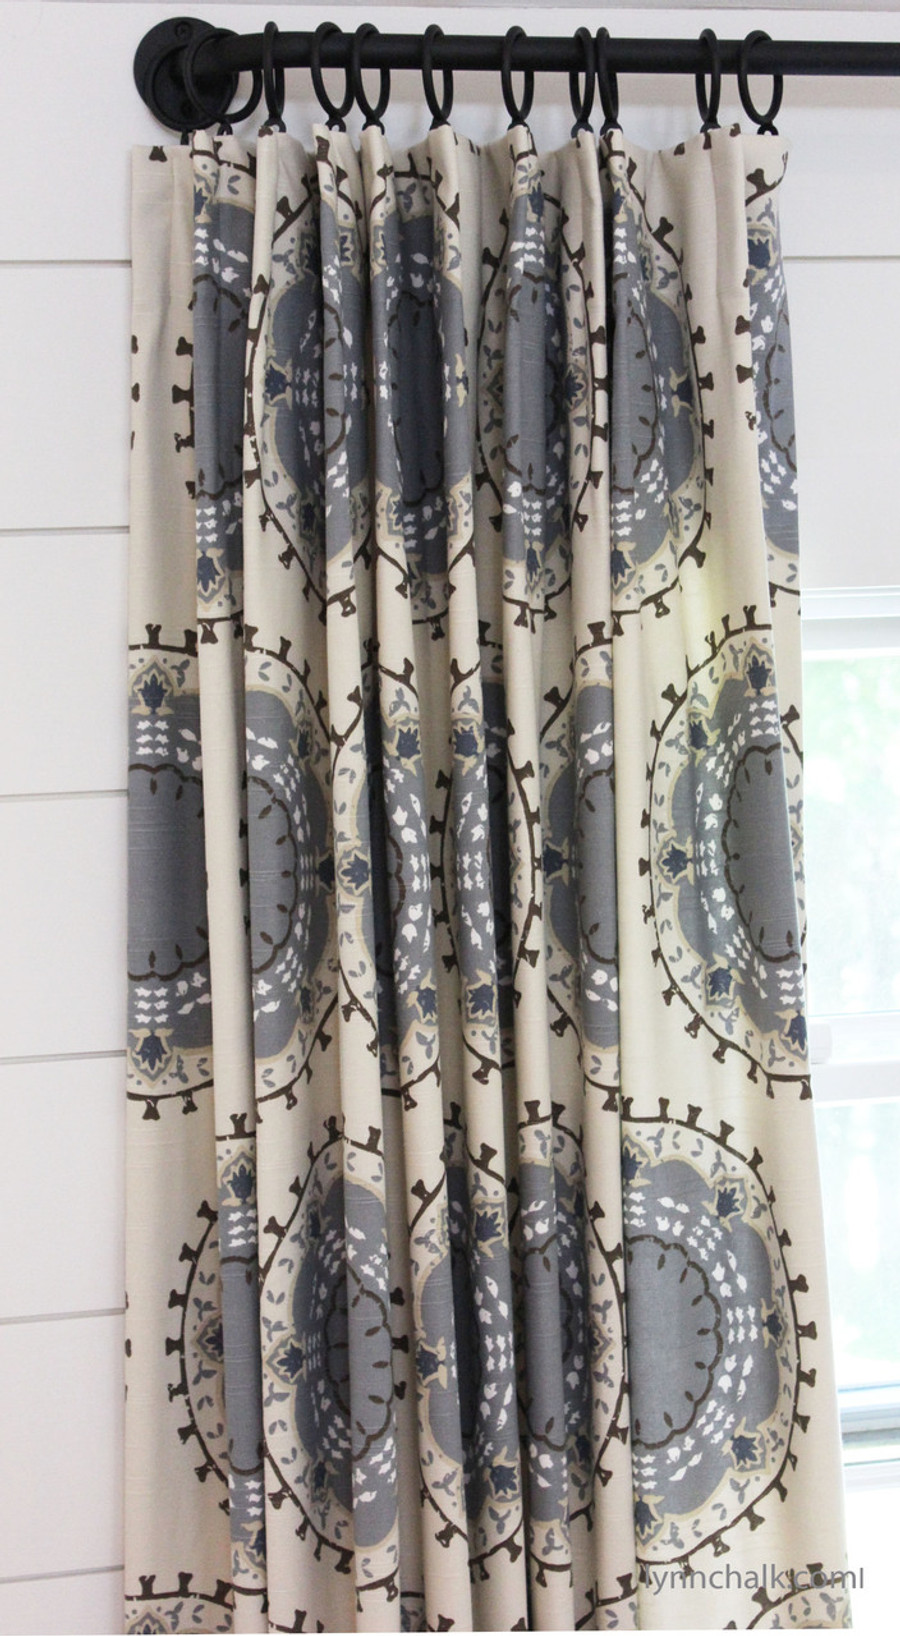 Custom Drapes by Lynn Chalk in Robert Allen Dwell Studio Medallion Band in Mineral.  French Poles and Rings are by Helser Brothers in Coal.